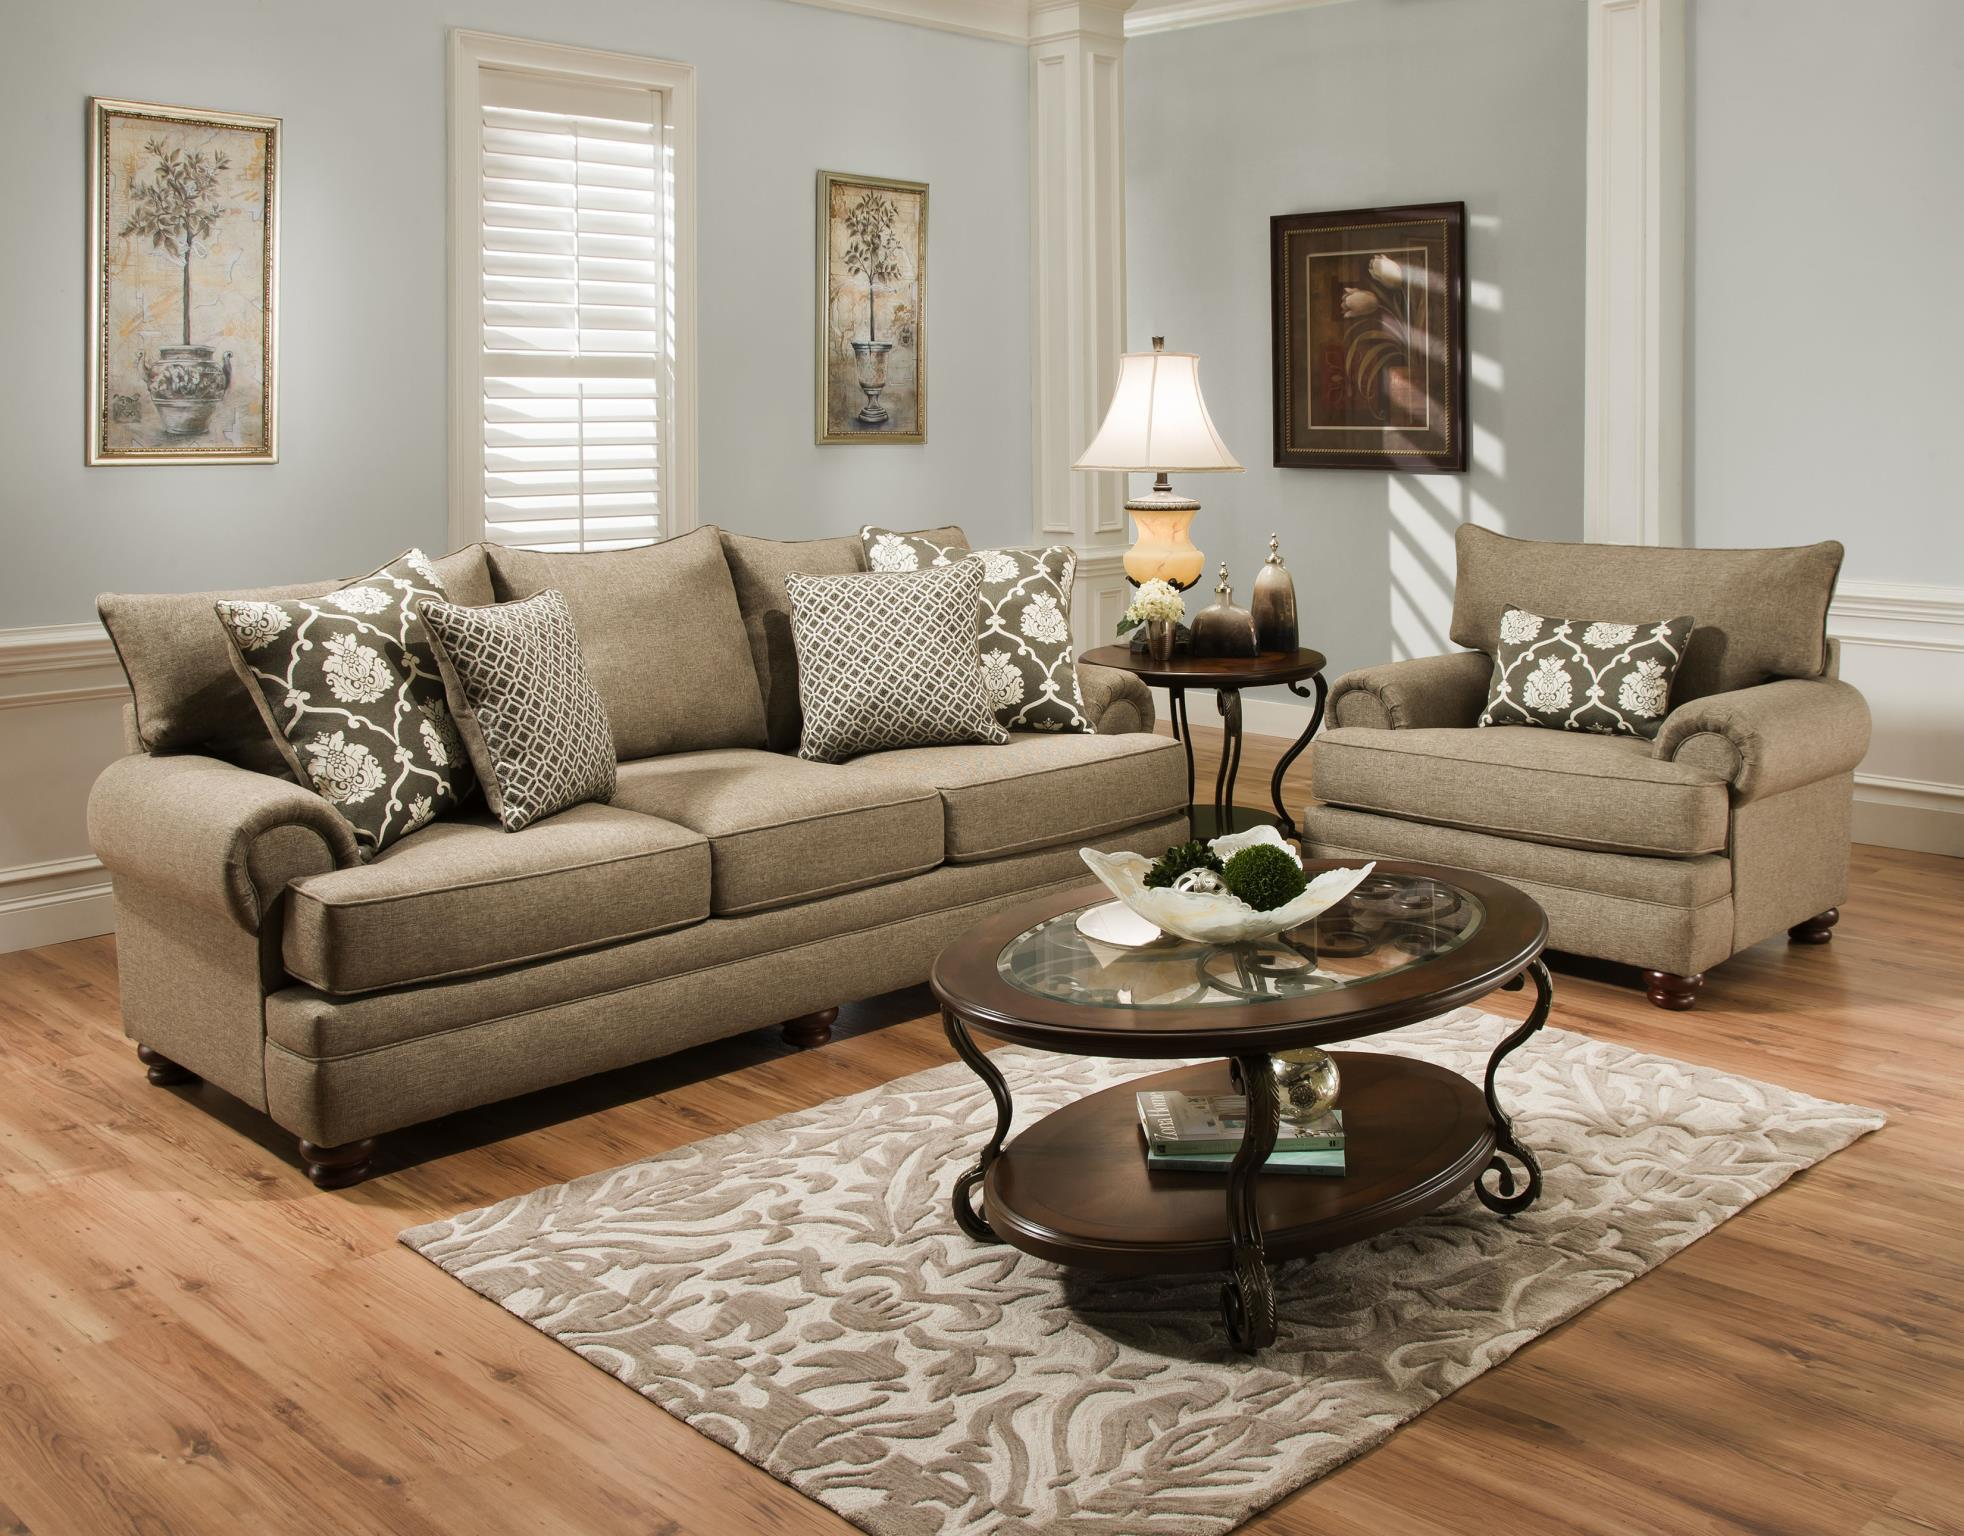 Albany 8645 Stationary Living Room Group - Item Number: 8645 Living Room Group 1